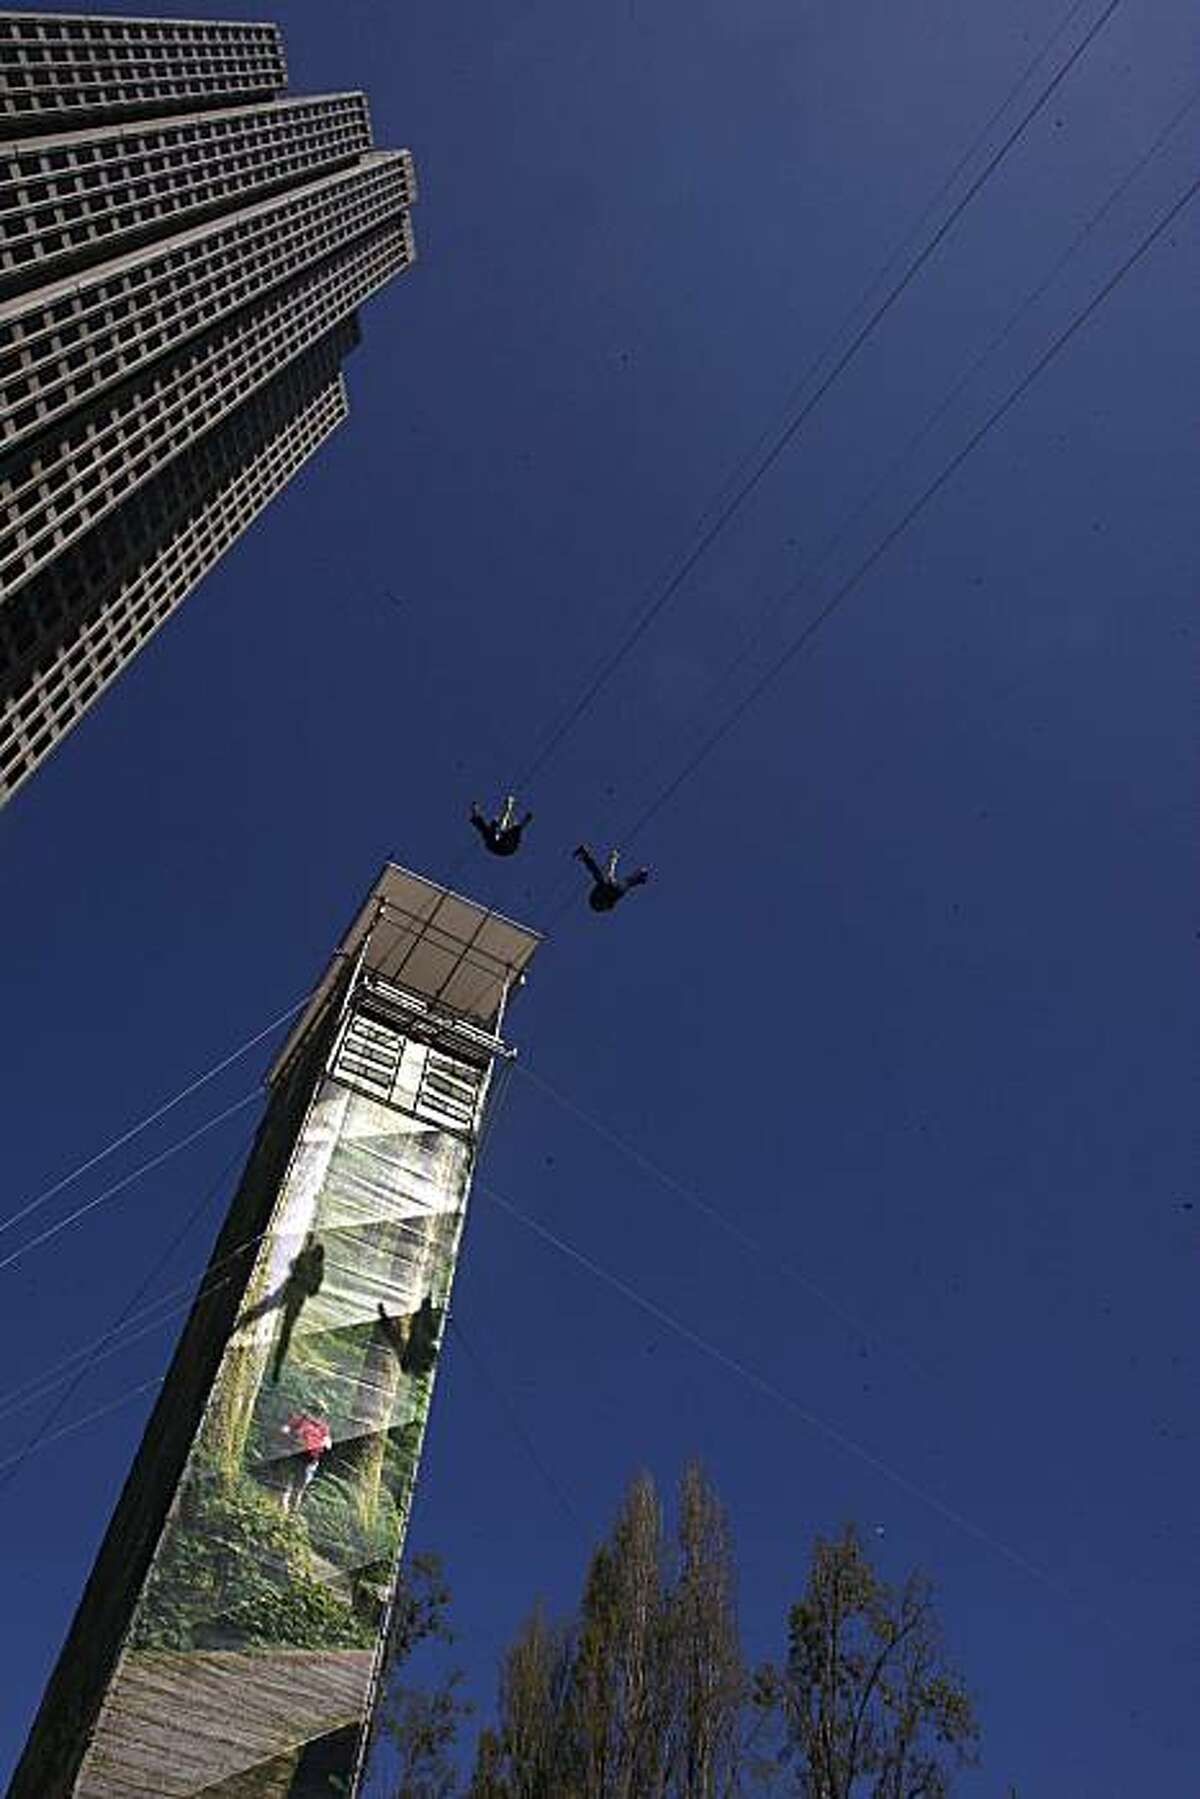 A view of the zipline ride at Justin Herman Plaza in San Francisco, Calif., on Thursday, April 8, 2010. An eleven day event called